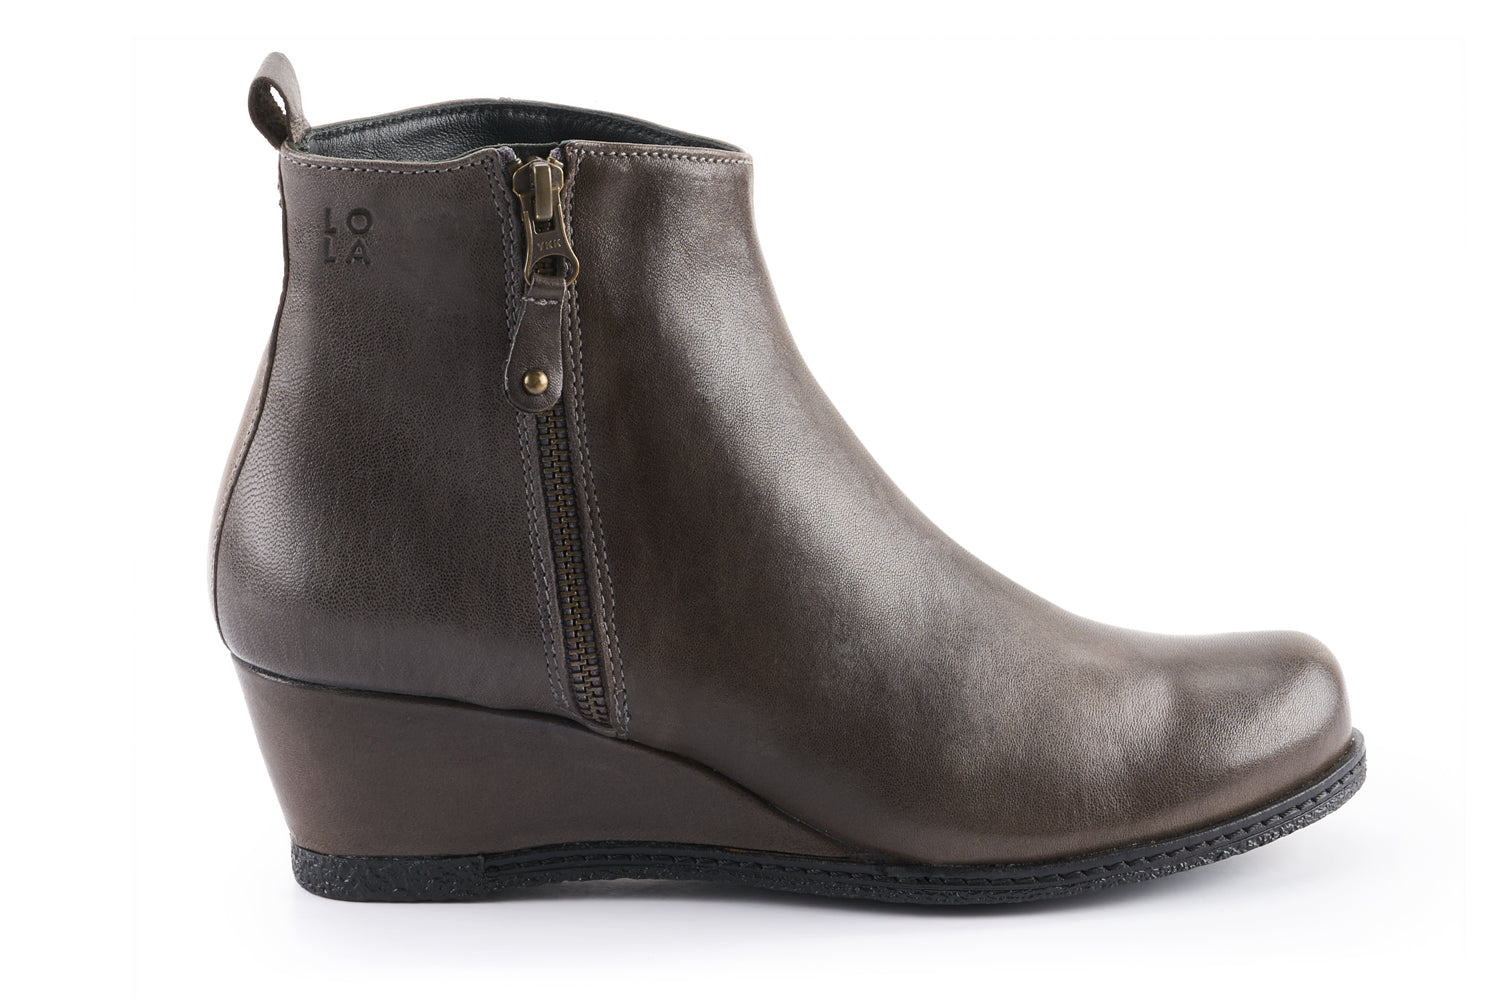 Grace Leather Wedge Ankle boots - Charcoal Grey